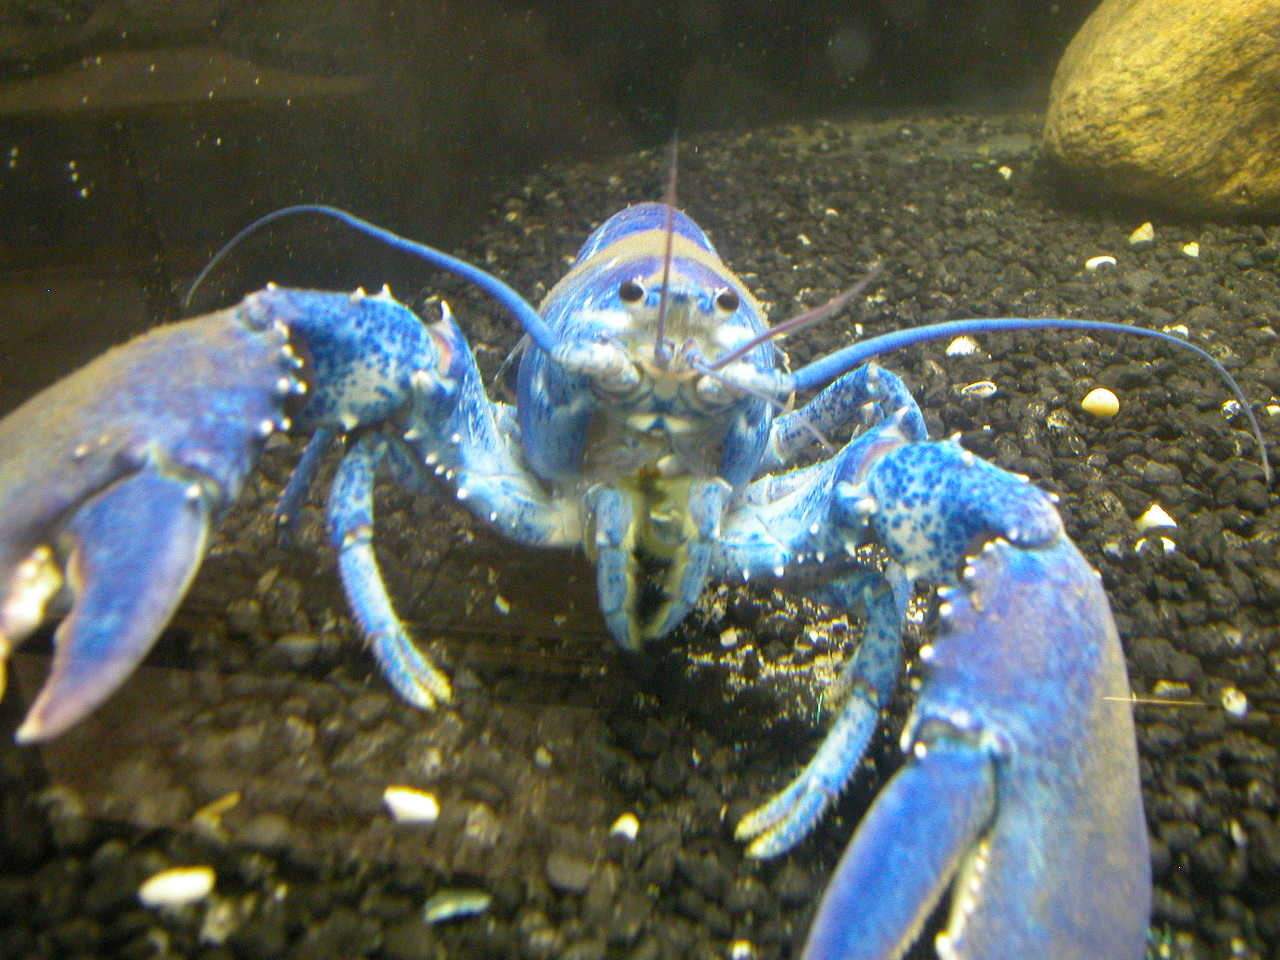 blue lobster looking at camera